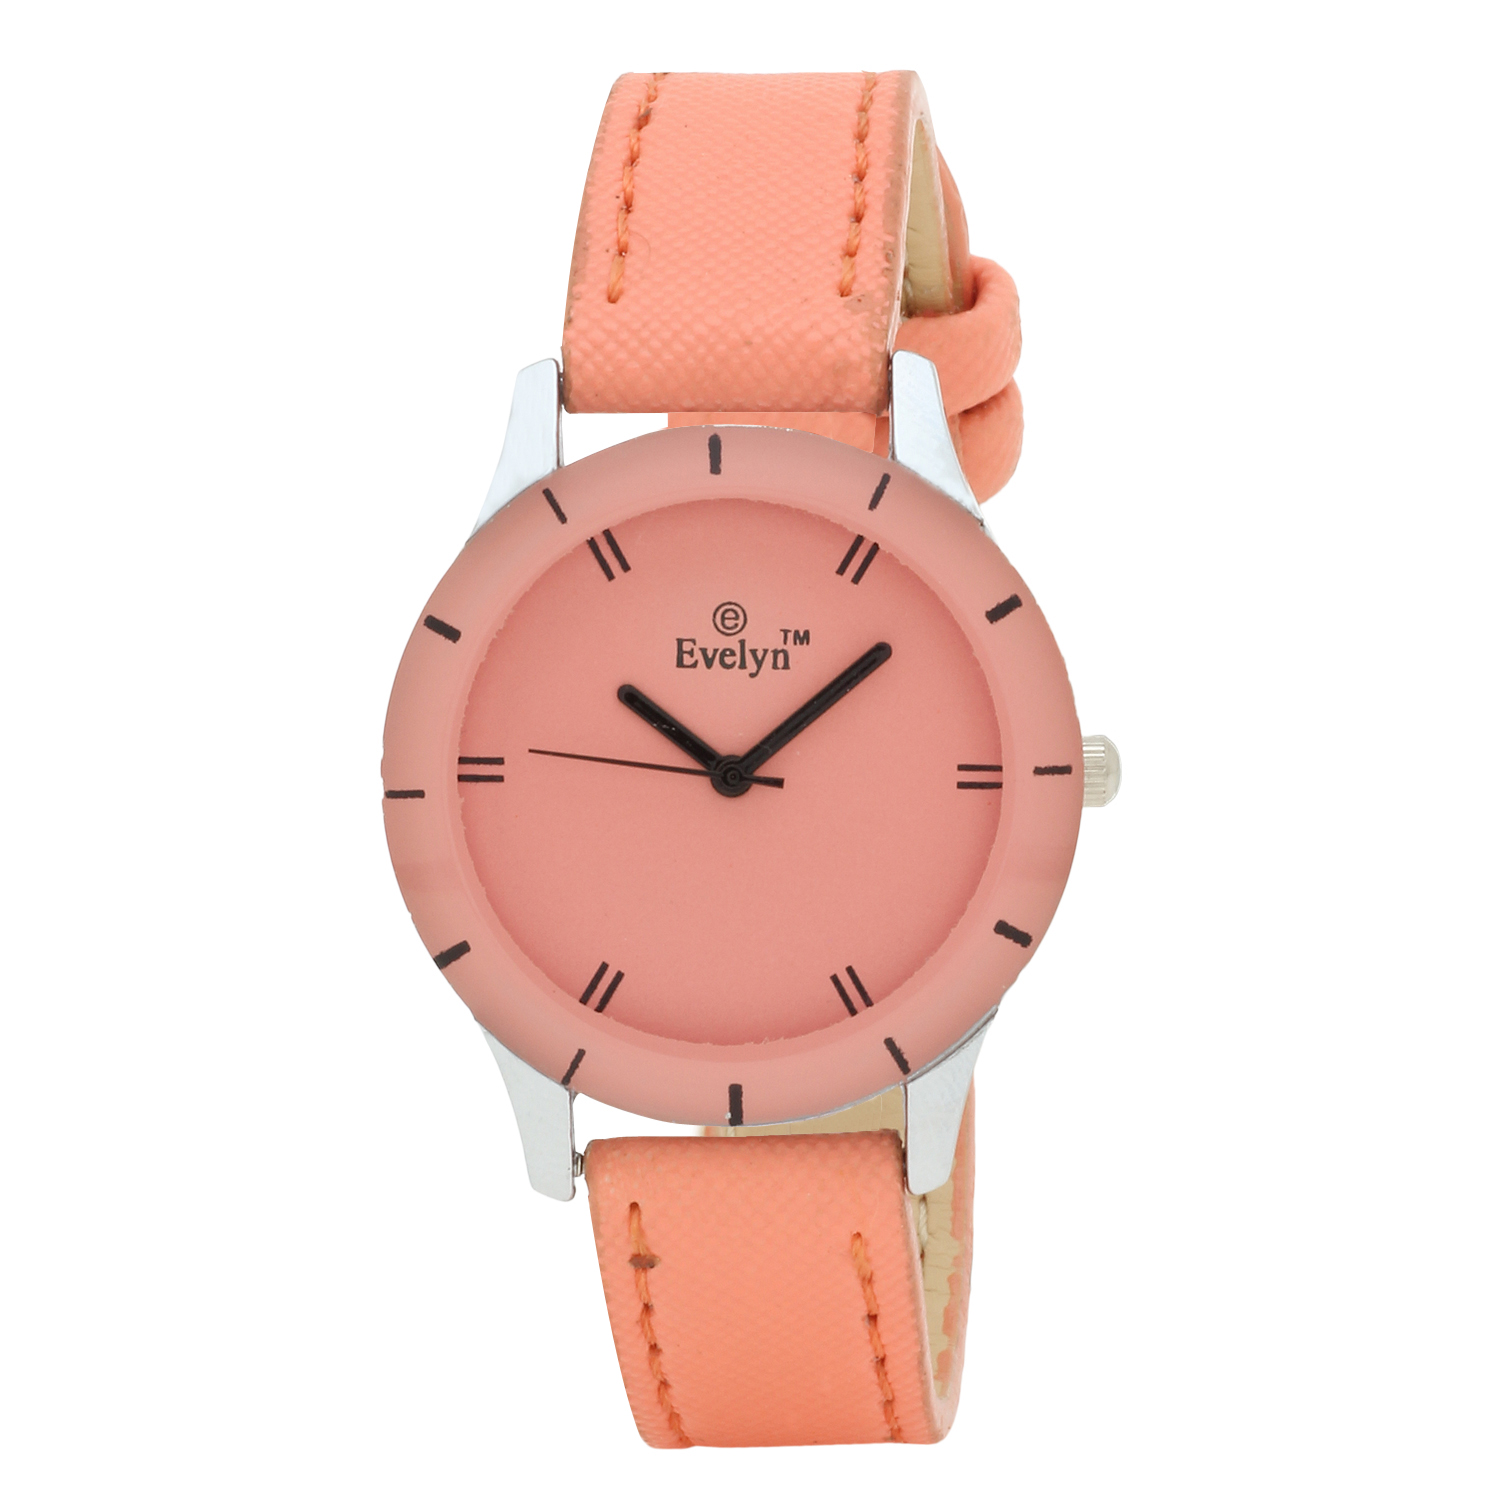 Evelyn Women Analog Watch  OR 272